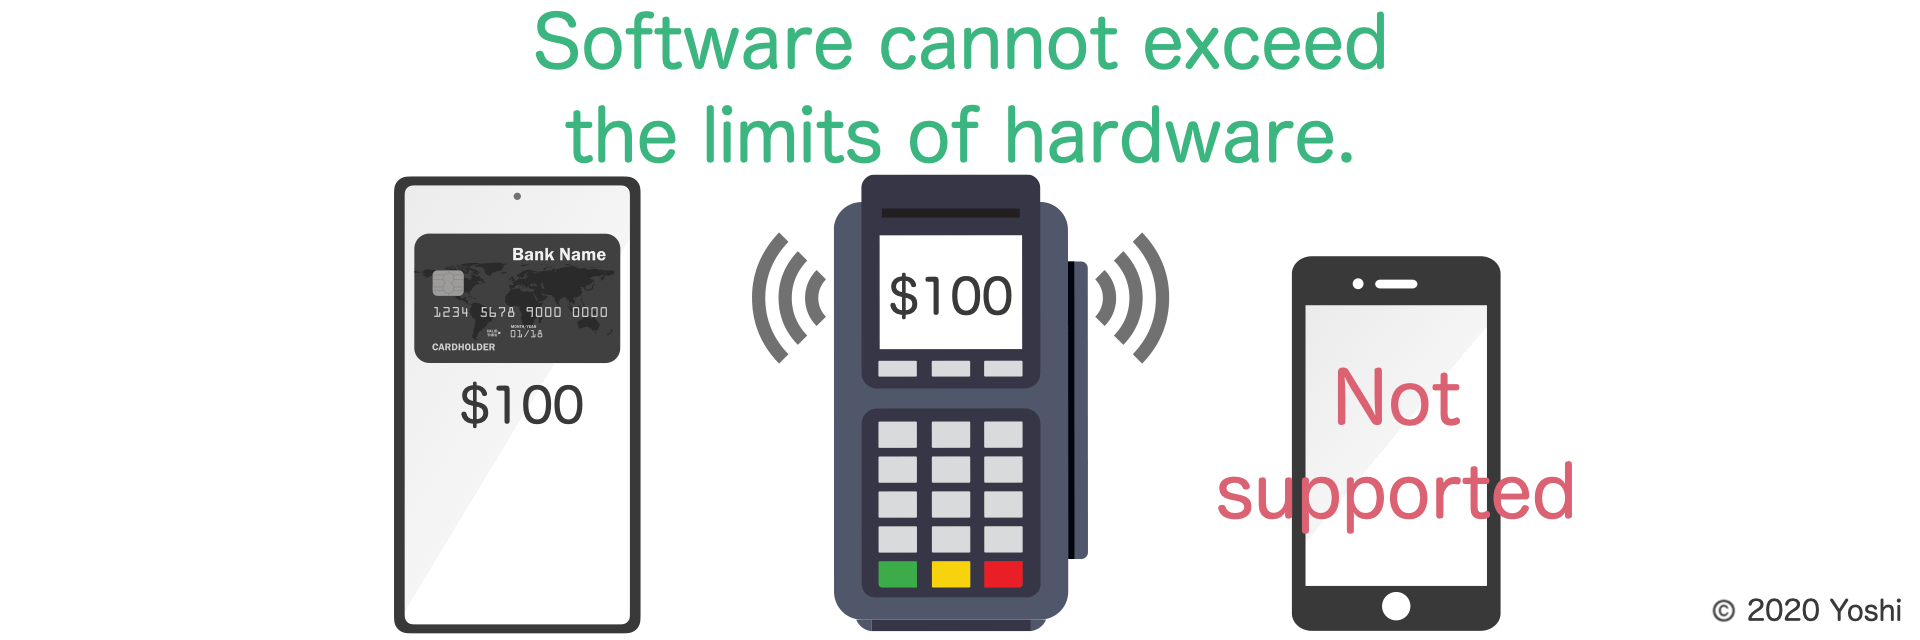 software cannot exceed limit of hardware